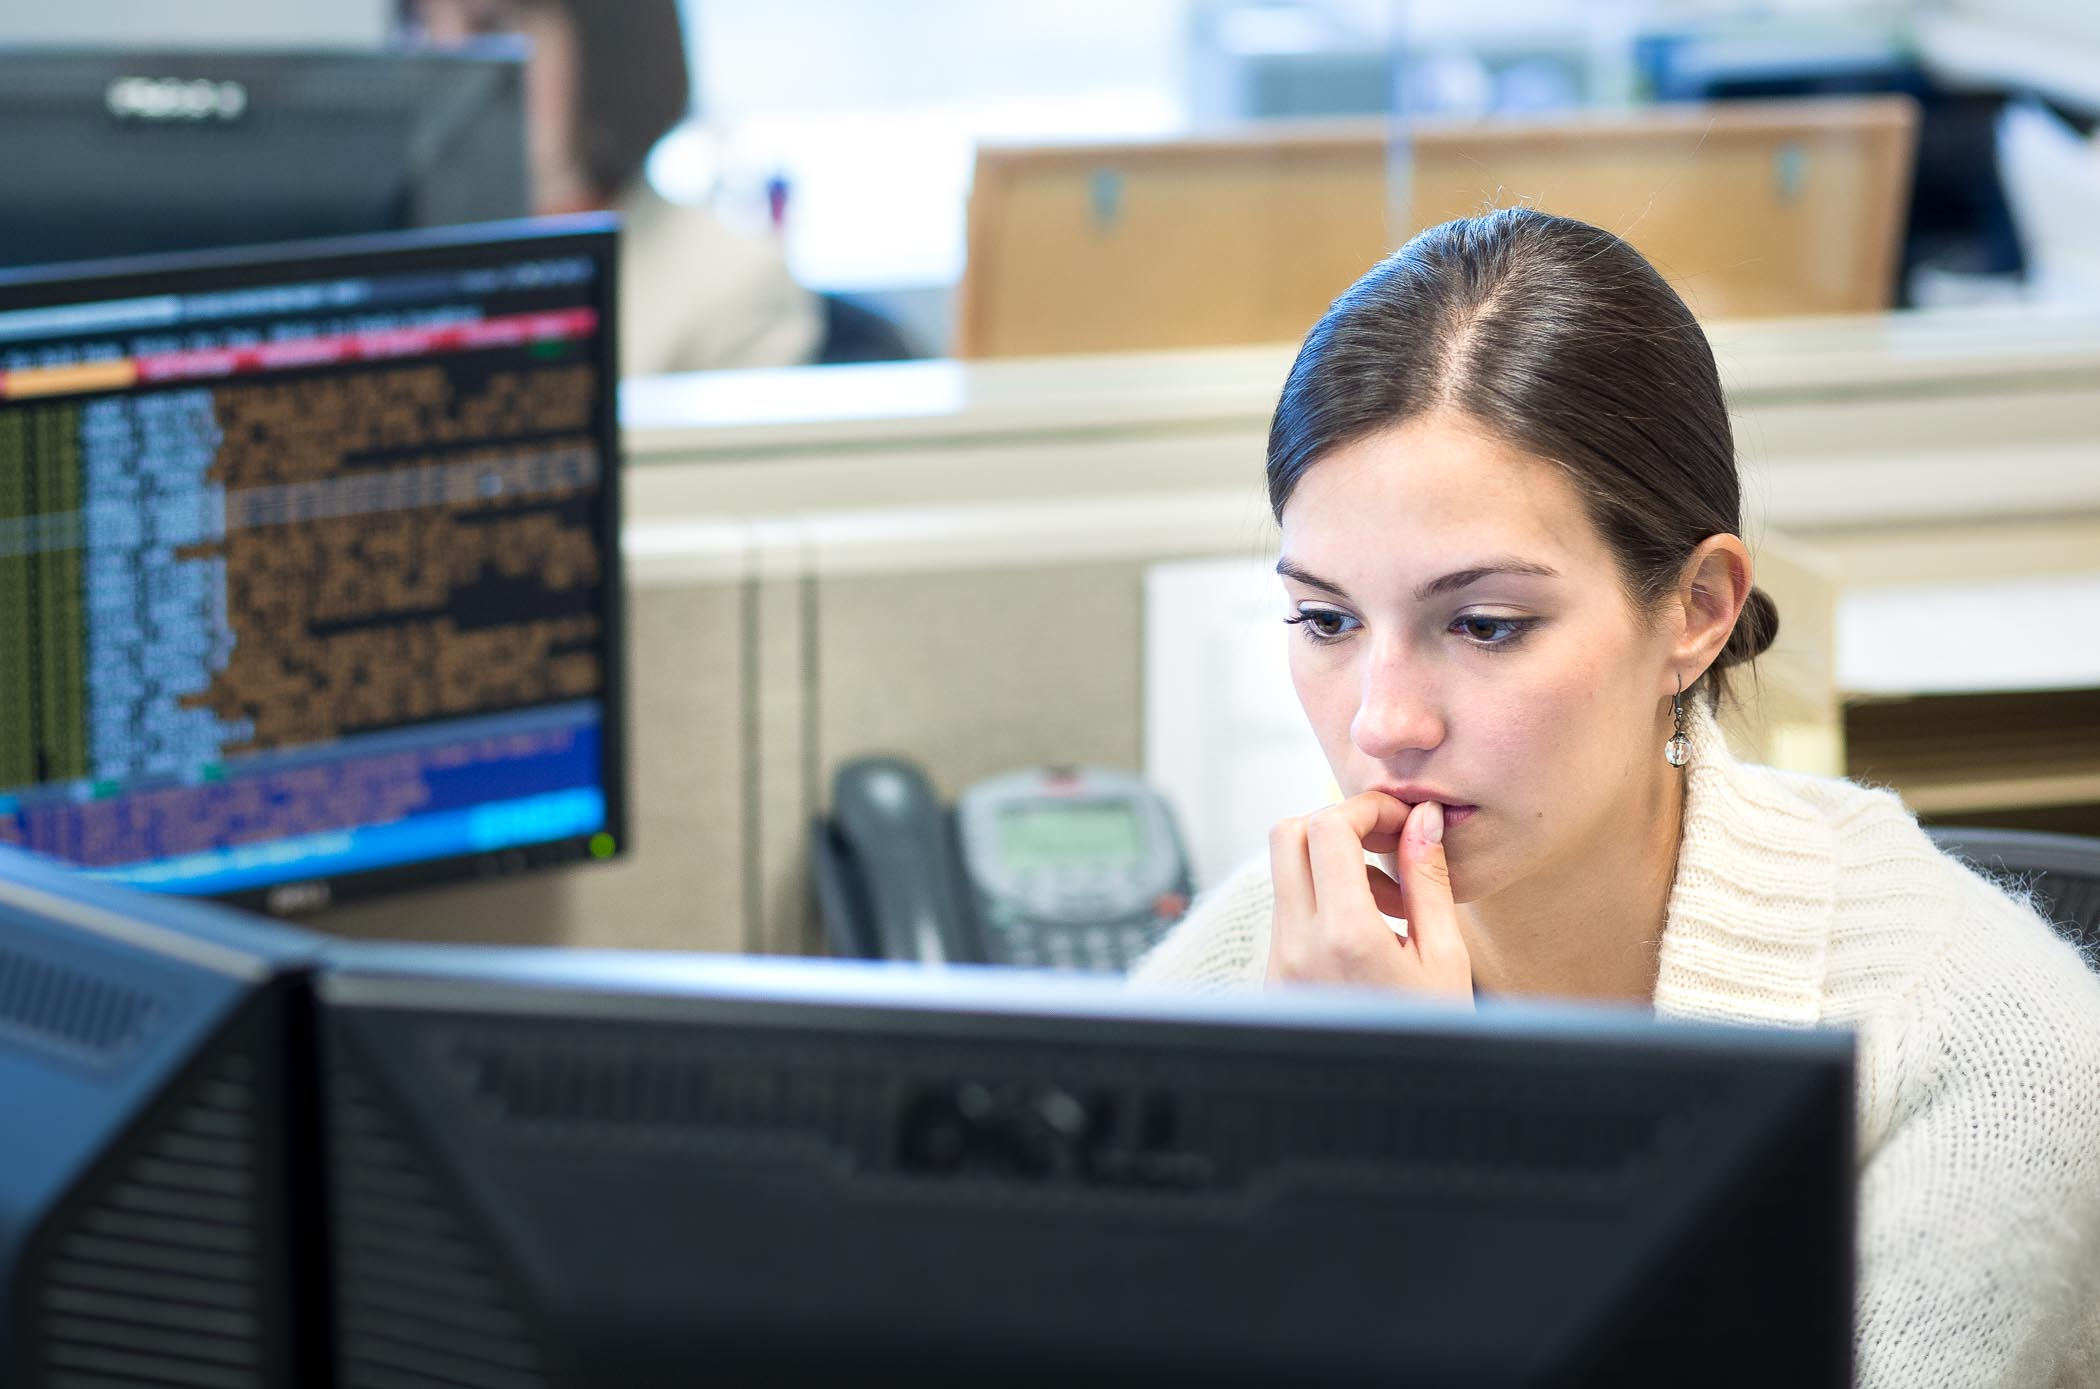 Candid photo of woman at desk reviewing stock trades by Atlanta photographer